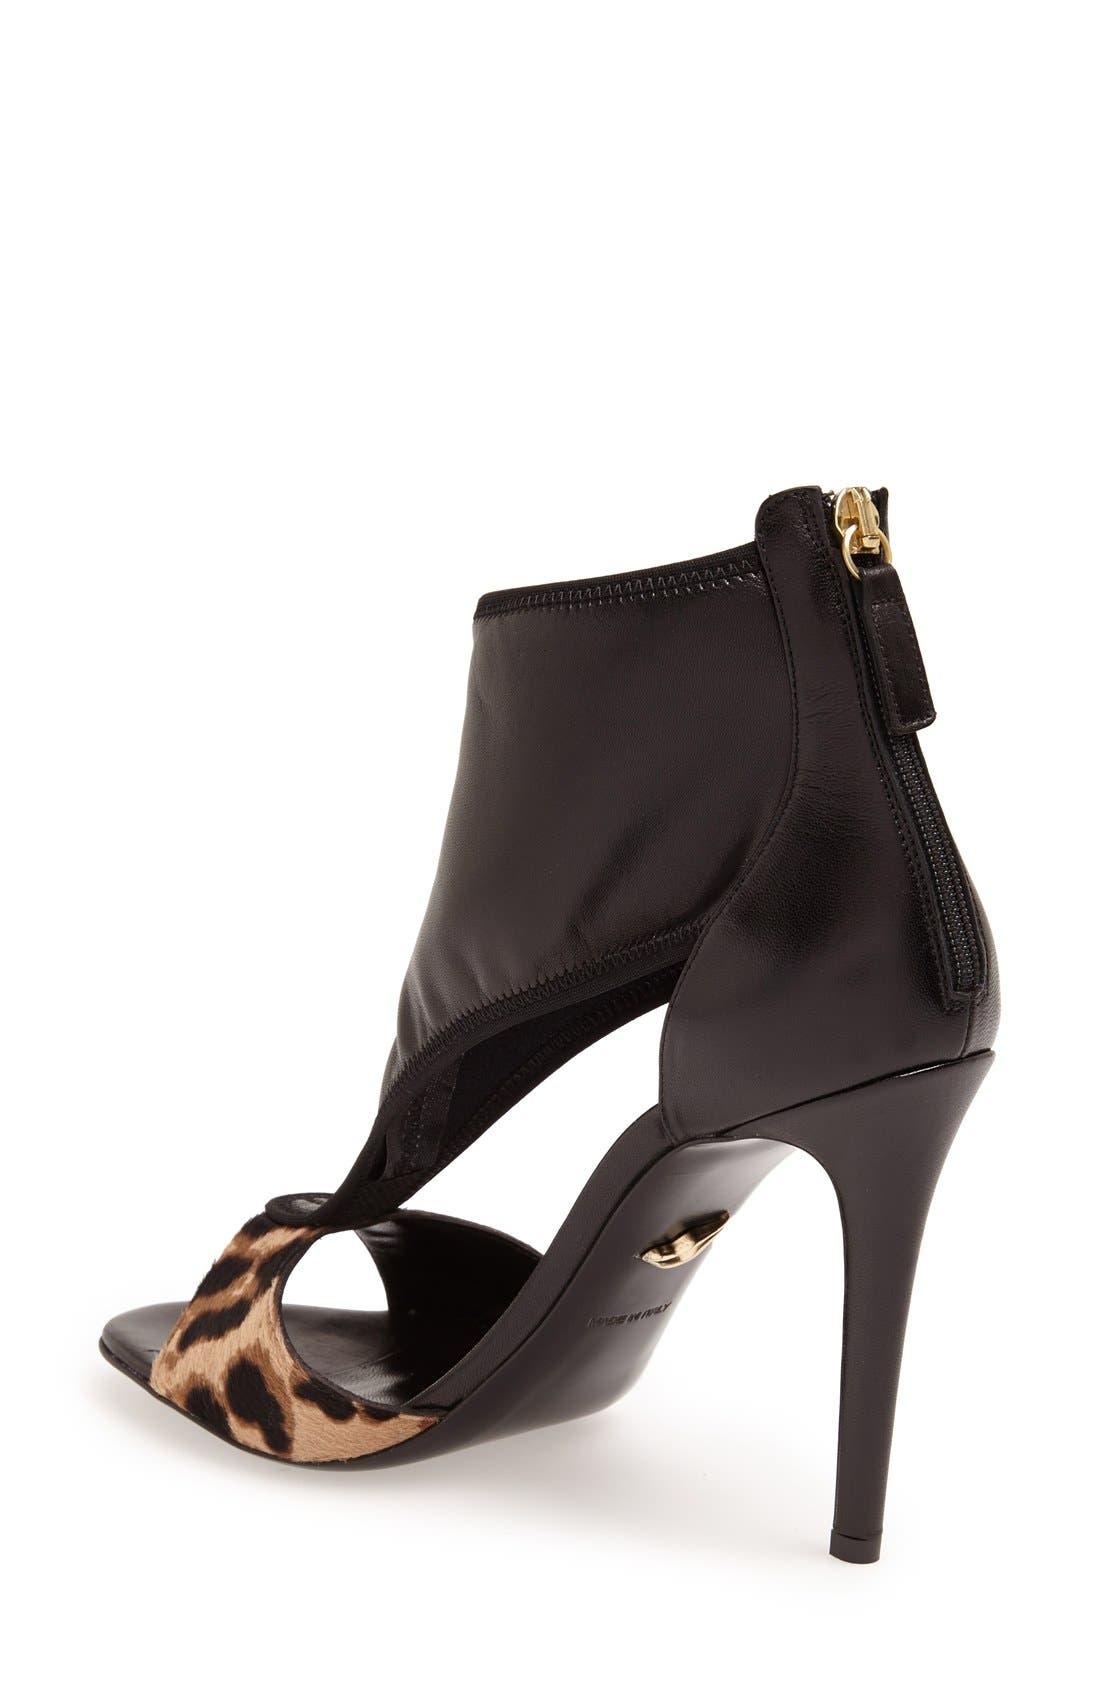 Alternate Image 2  - Diane von Furstenberg 'Uffie' Leather & Calf Hair Sandal